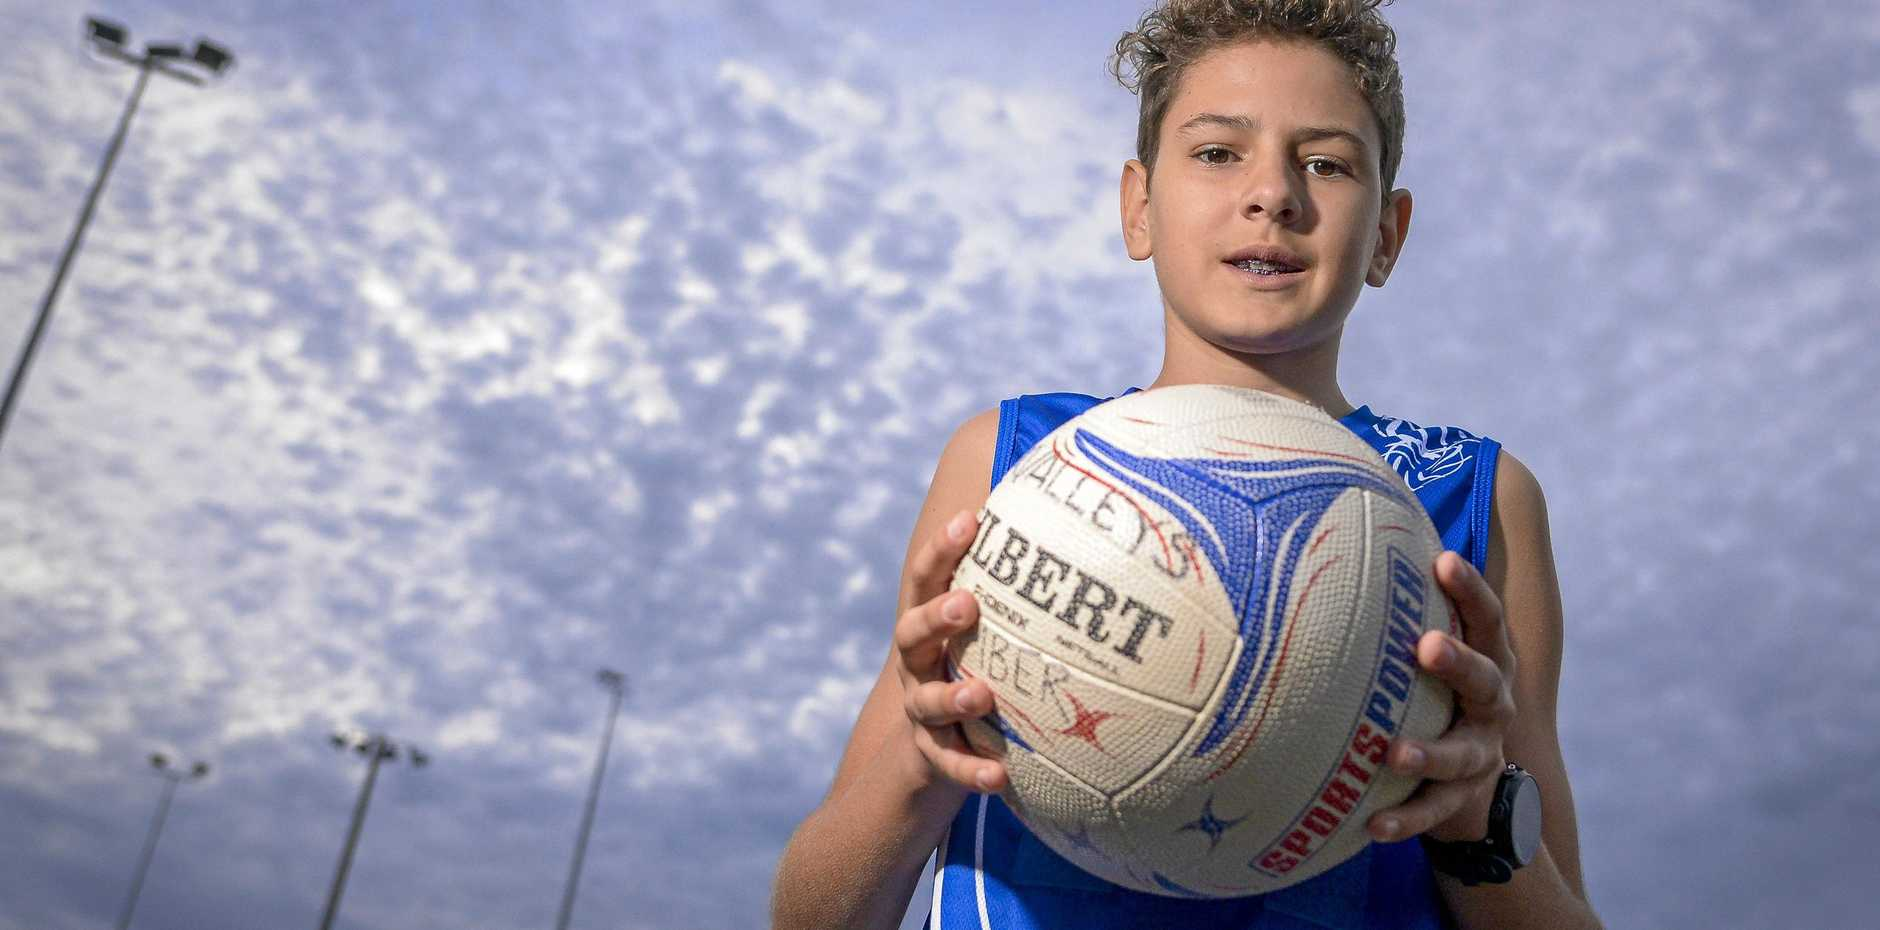 Cooper Castelli is the first male Gladstone Valleys netball player.